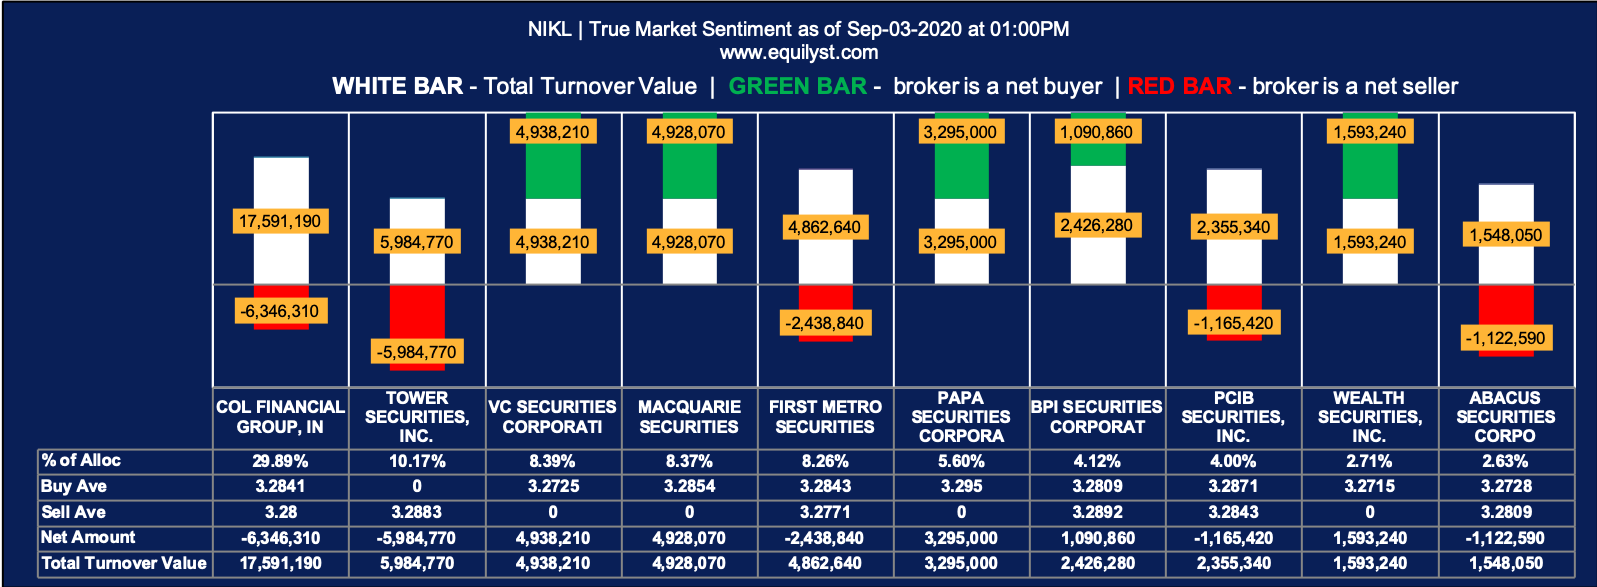 Nickel Asia Corporation (NIKL) Analysis - True Market Sentiment EOD - 9.3.2020